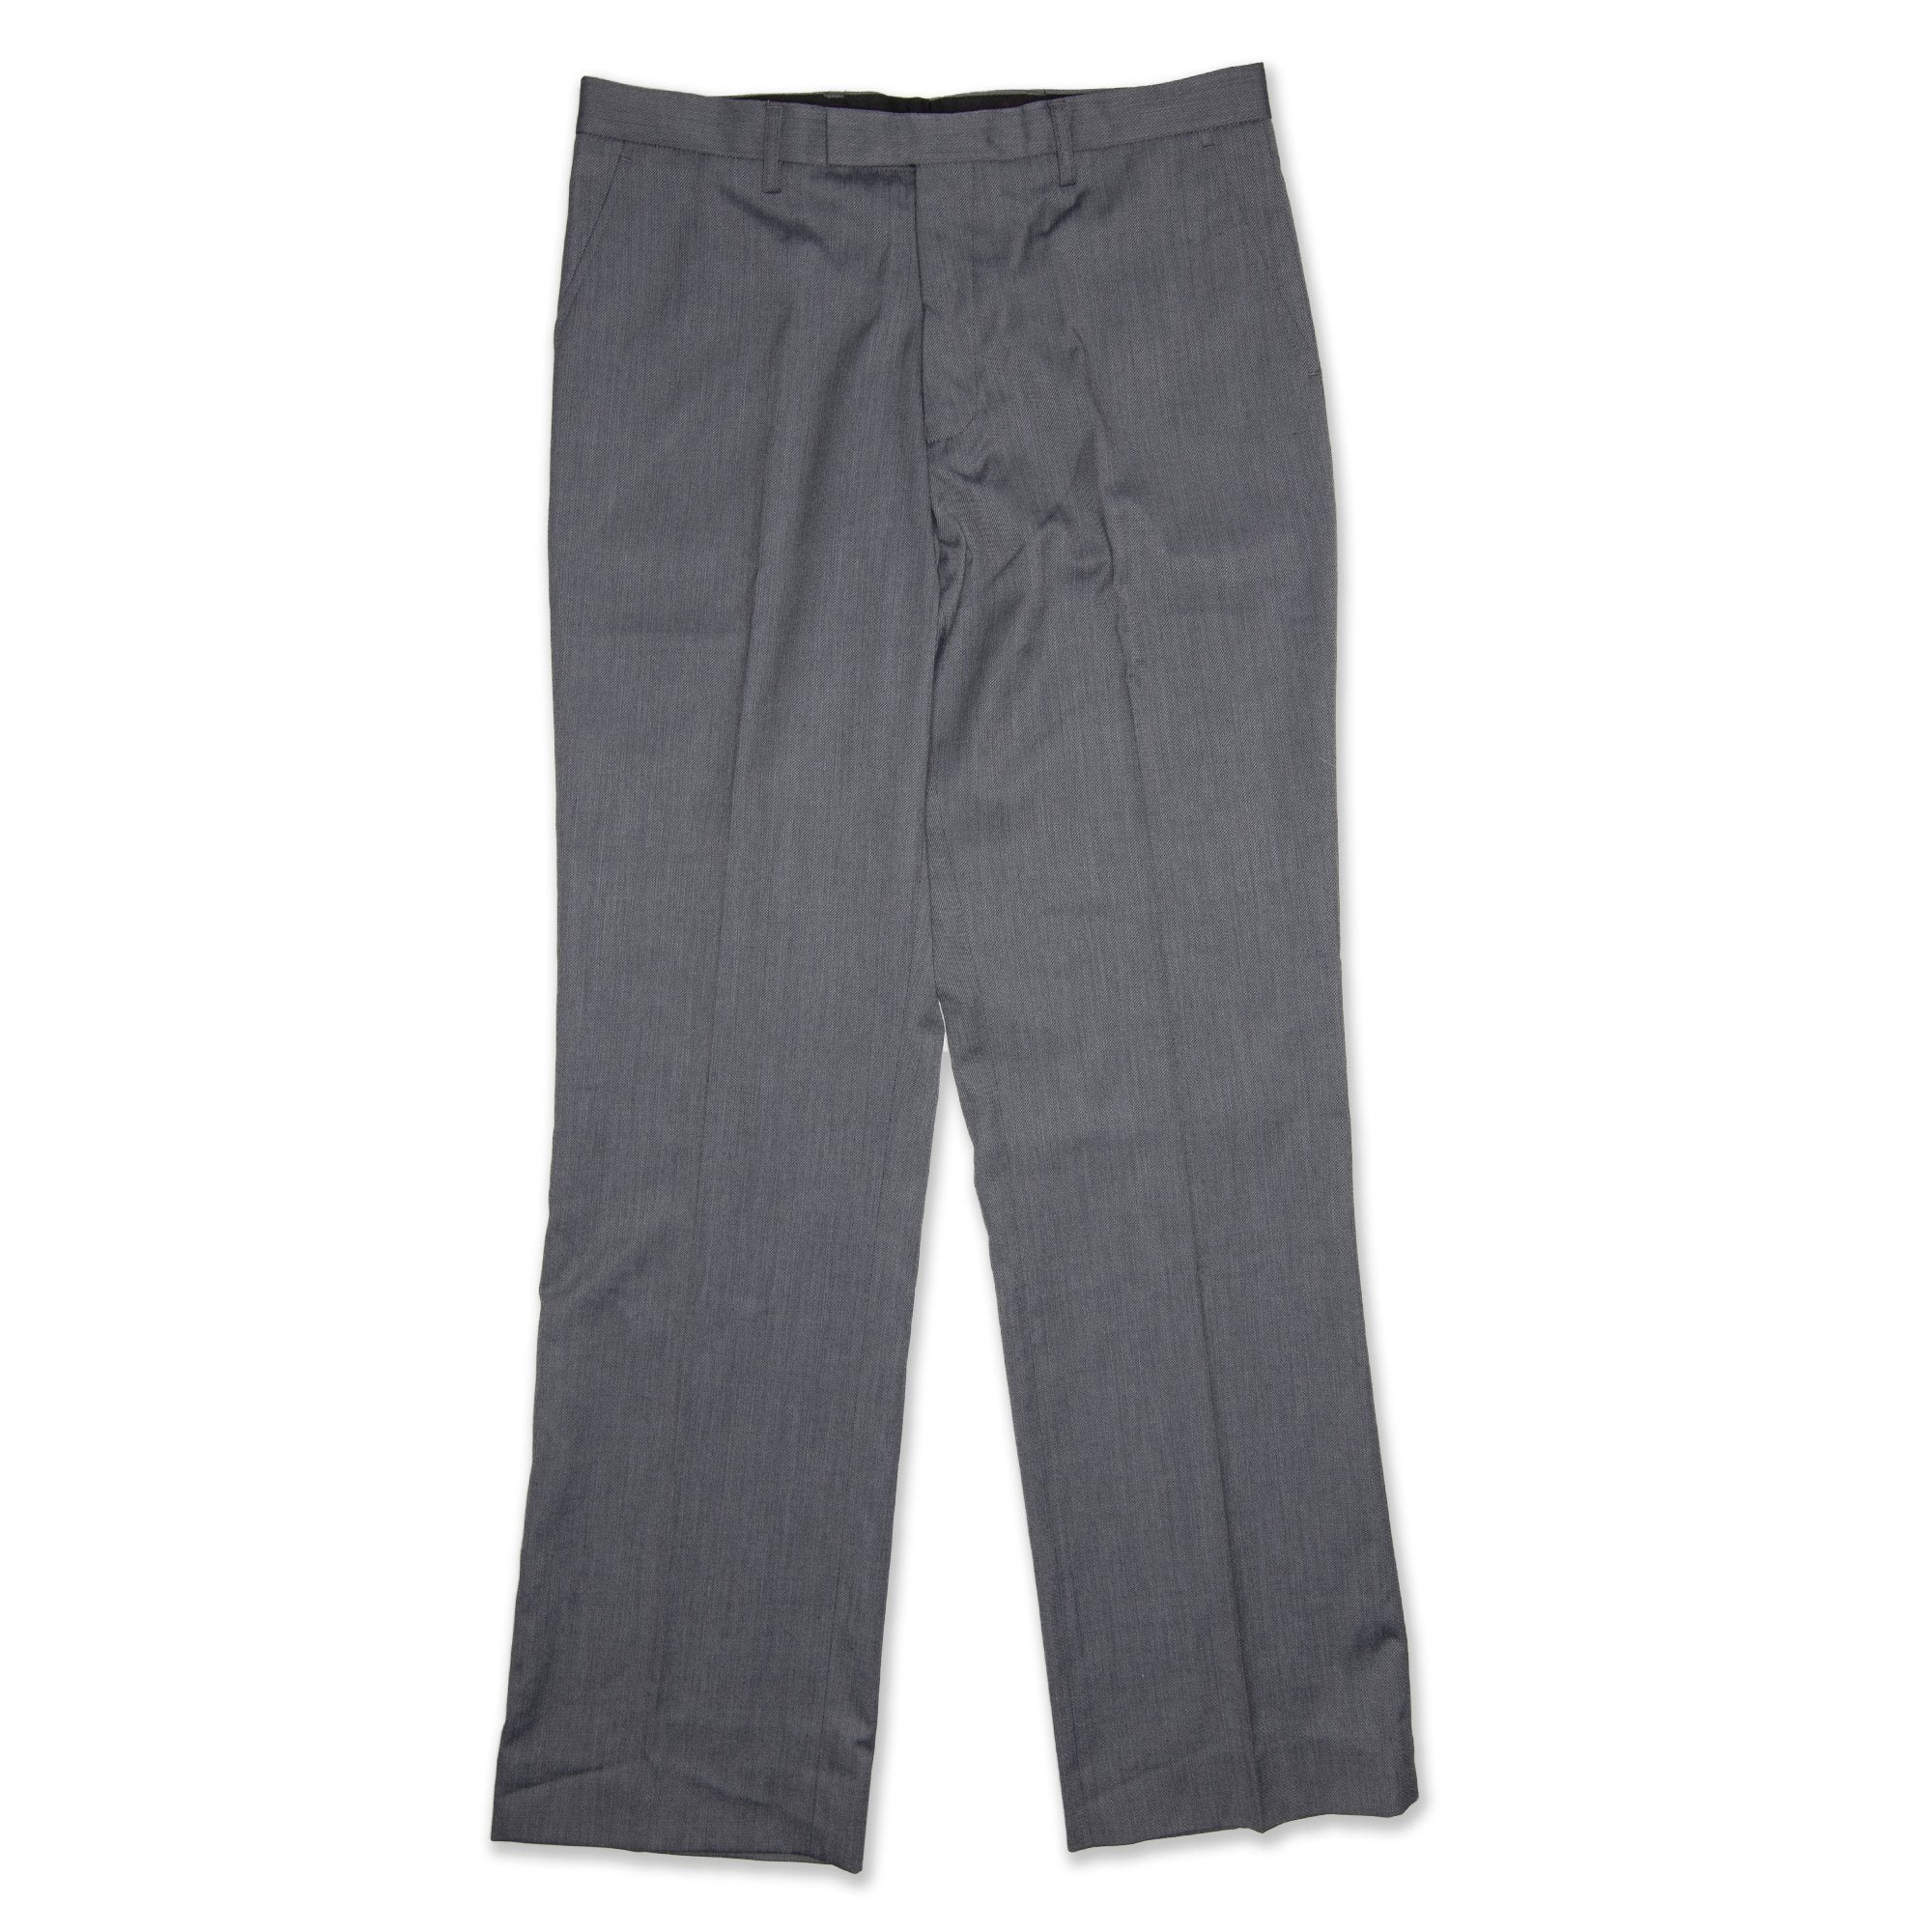 Bracks Tom Pleat Men's Pant - Light Grey Workwear Bracks